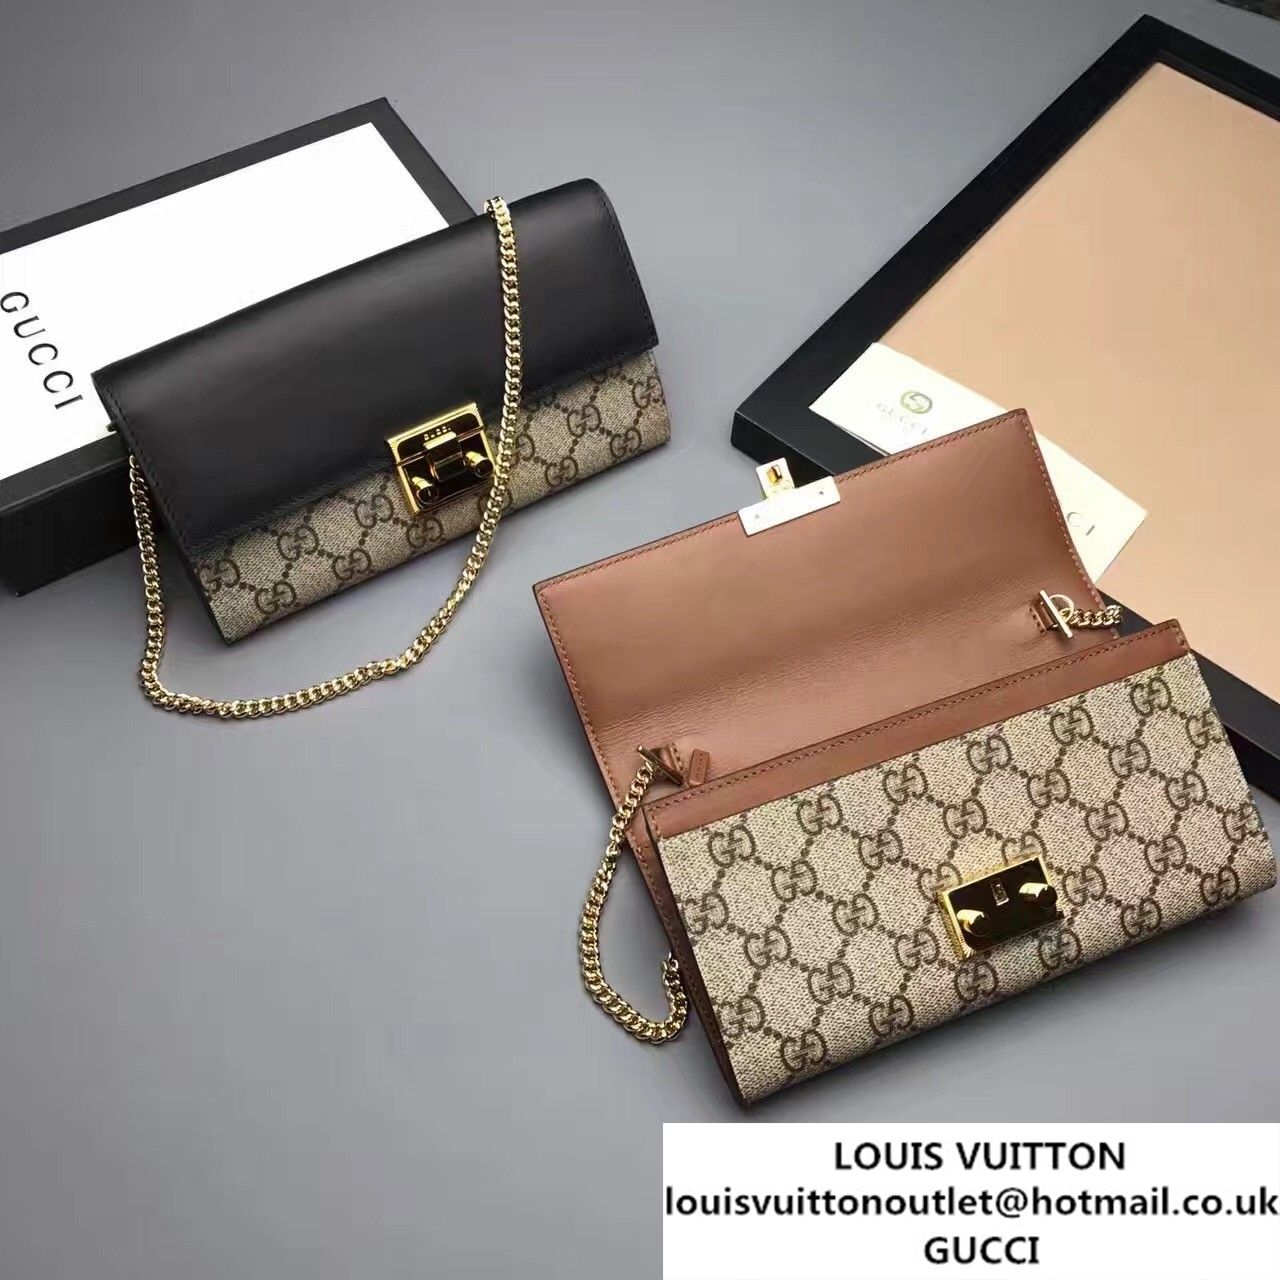 71736ceac926 Gucci Padlock GG Supreme Continental Chain Wallet Bag 453506 Black/Brown  2017